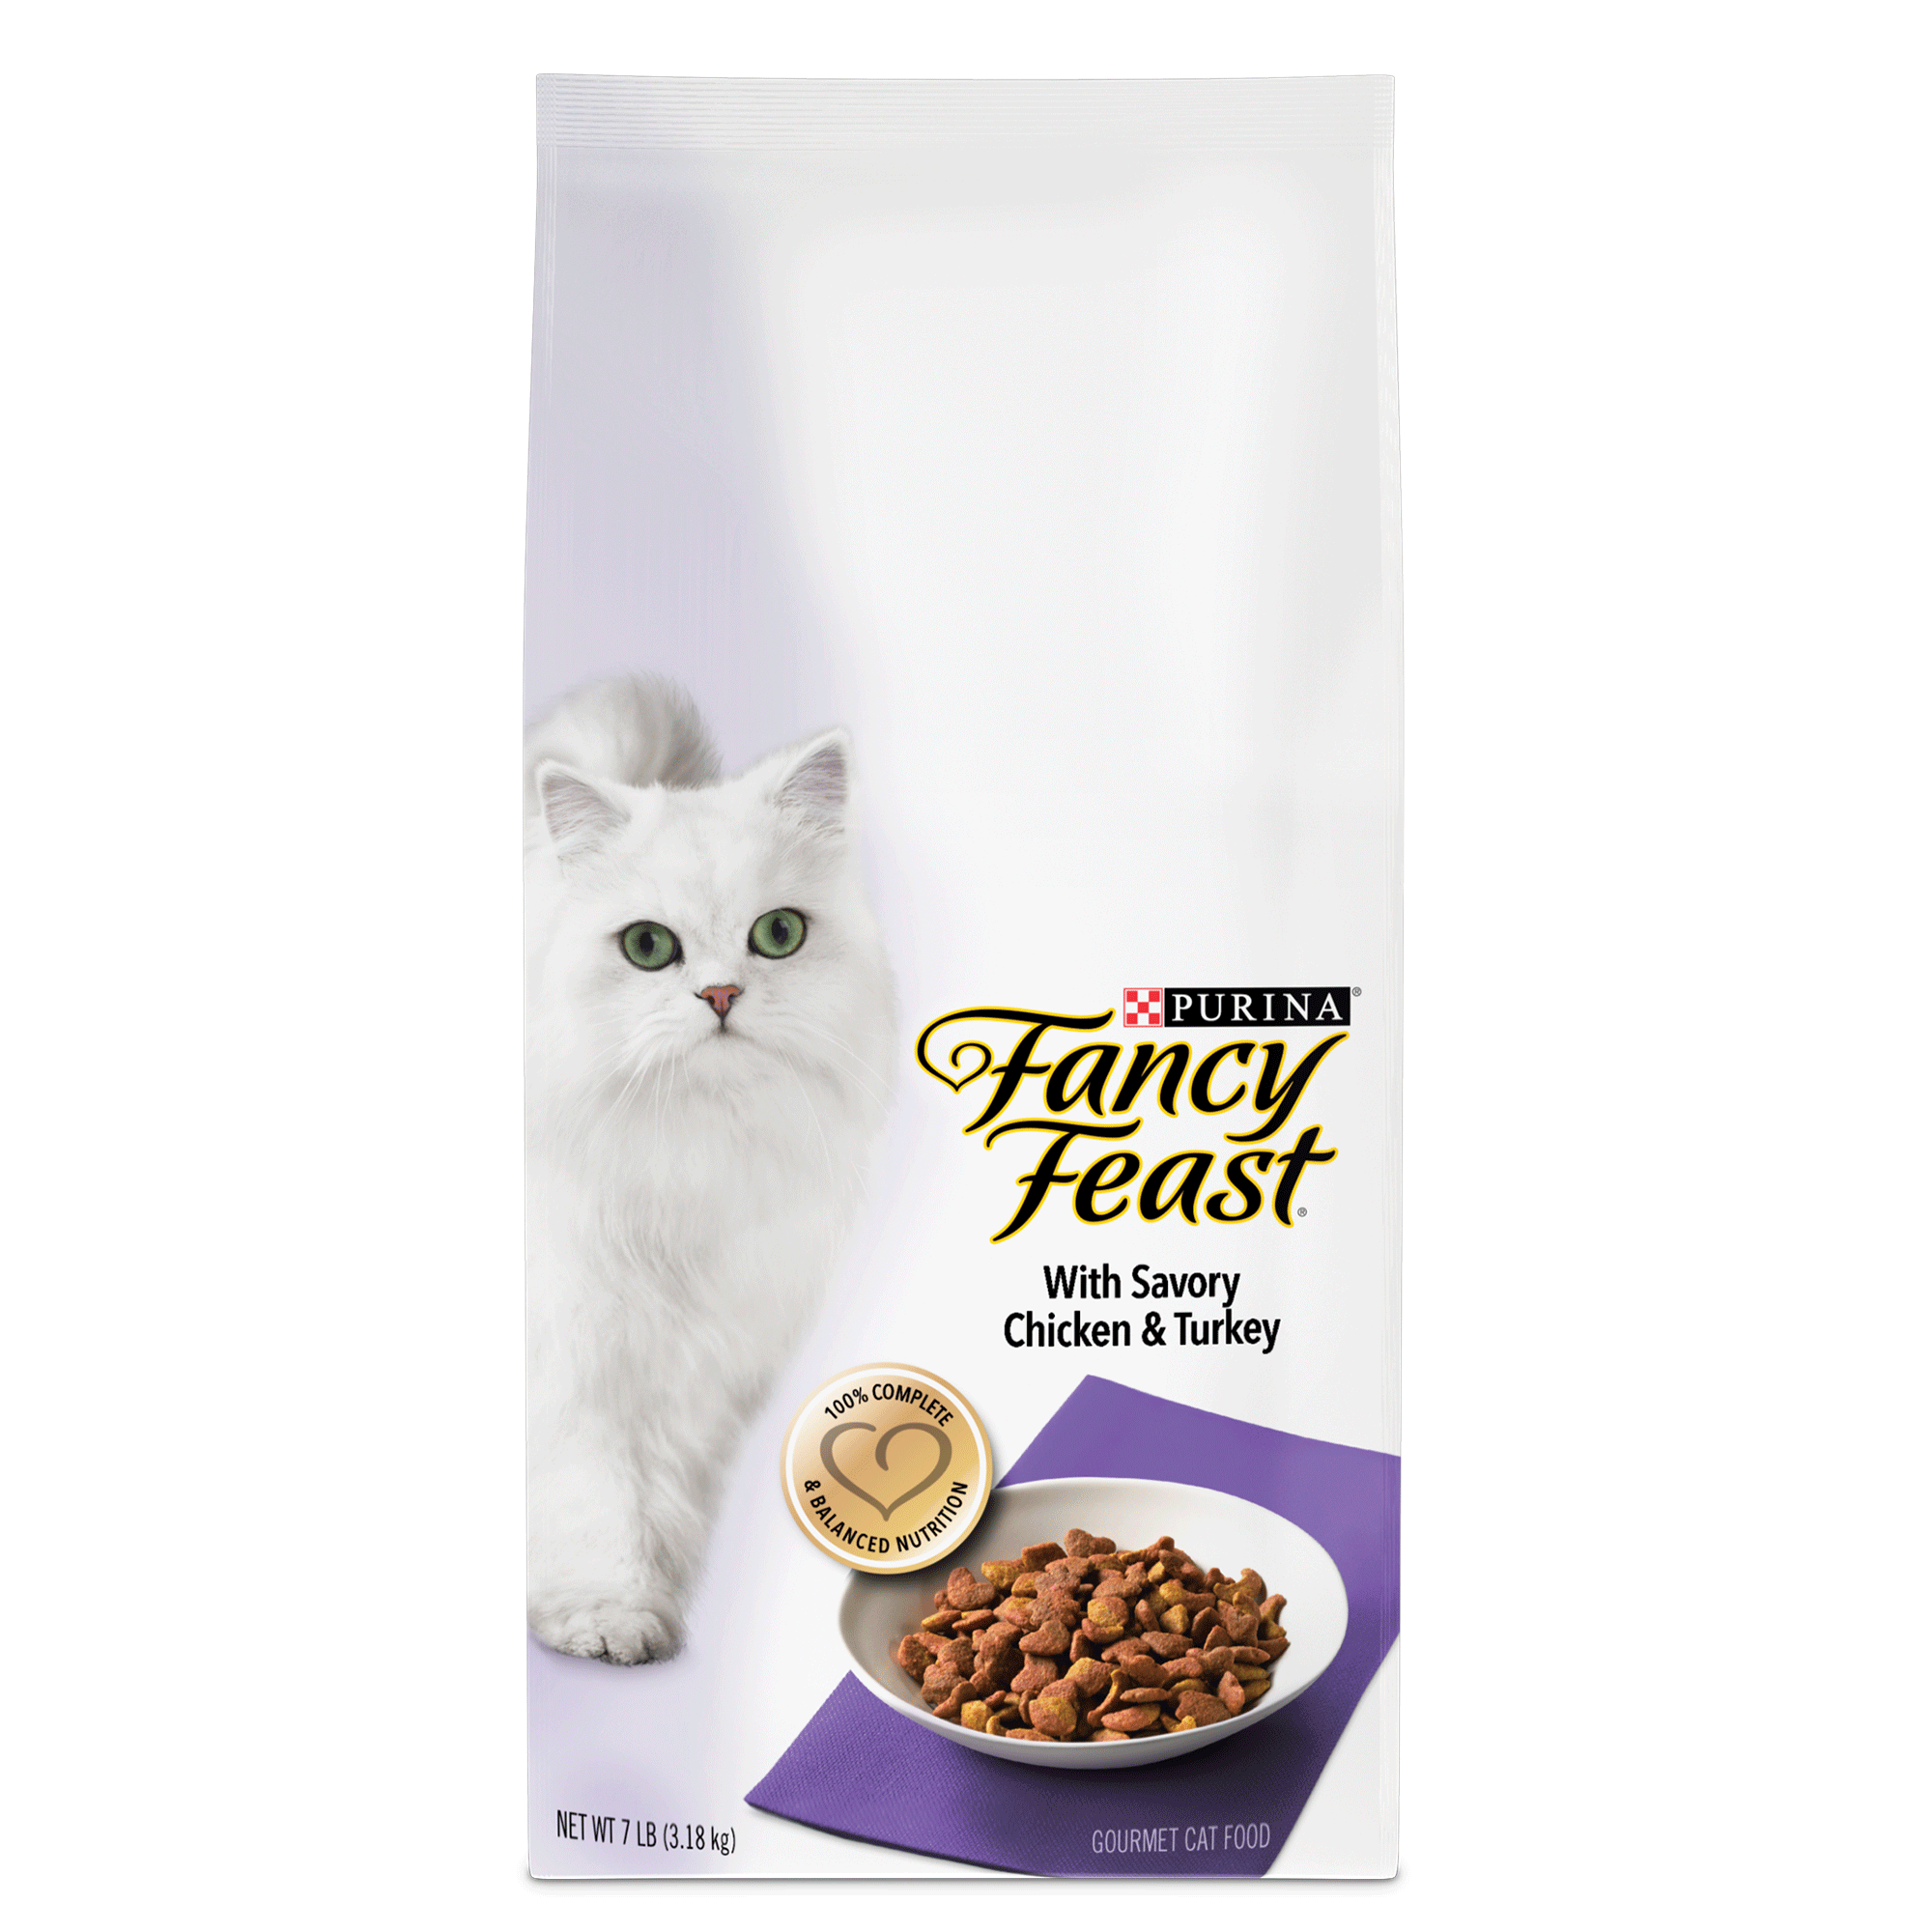 Fancy Feast With Savory Chicken & Turkey Dry Cat Food, 3 lb by Nestle Purina Petcare Company